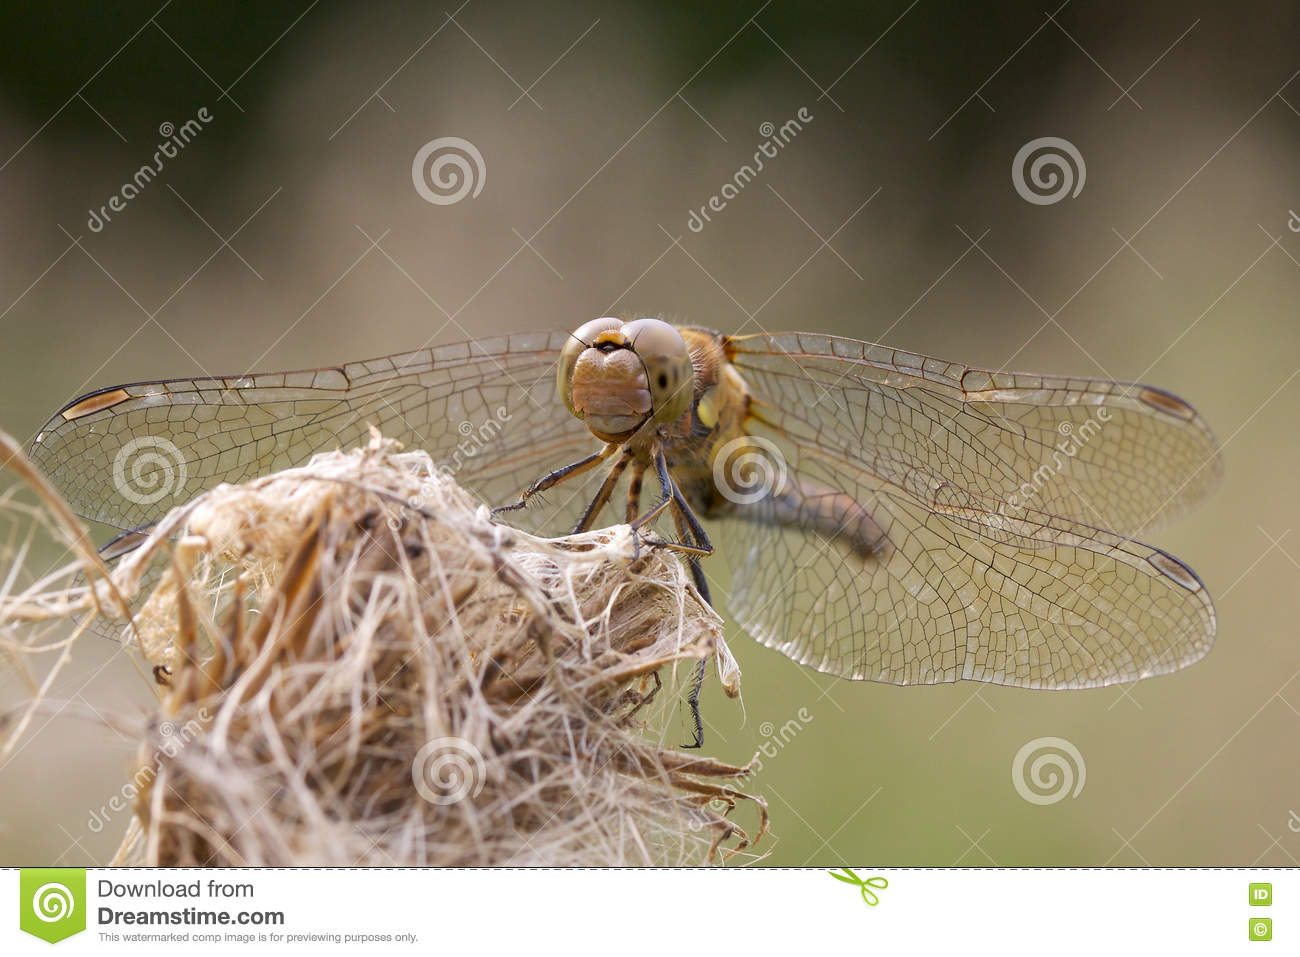 Common Dater dragonfly on an old flower head.